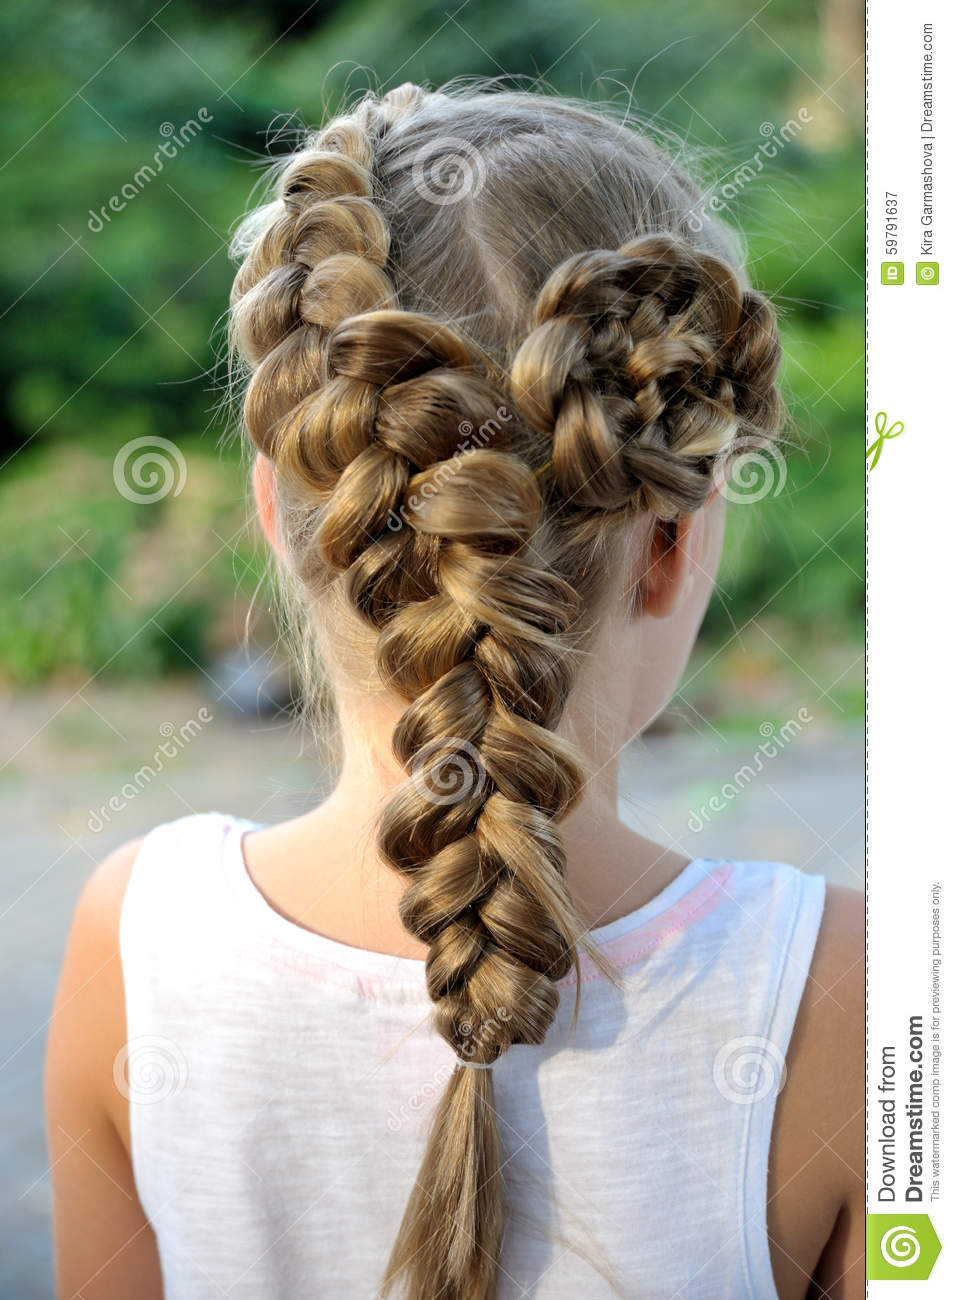 Girl hairstyle with French braid